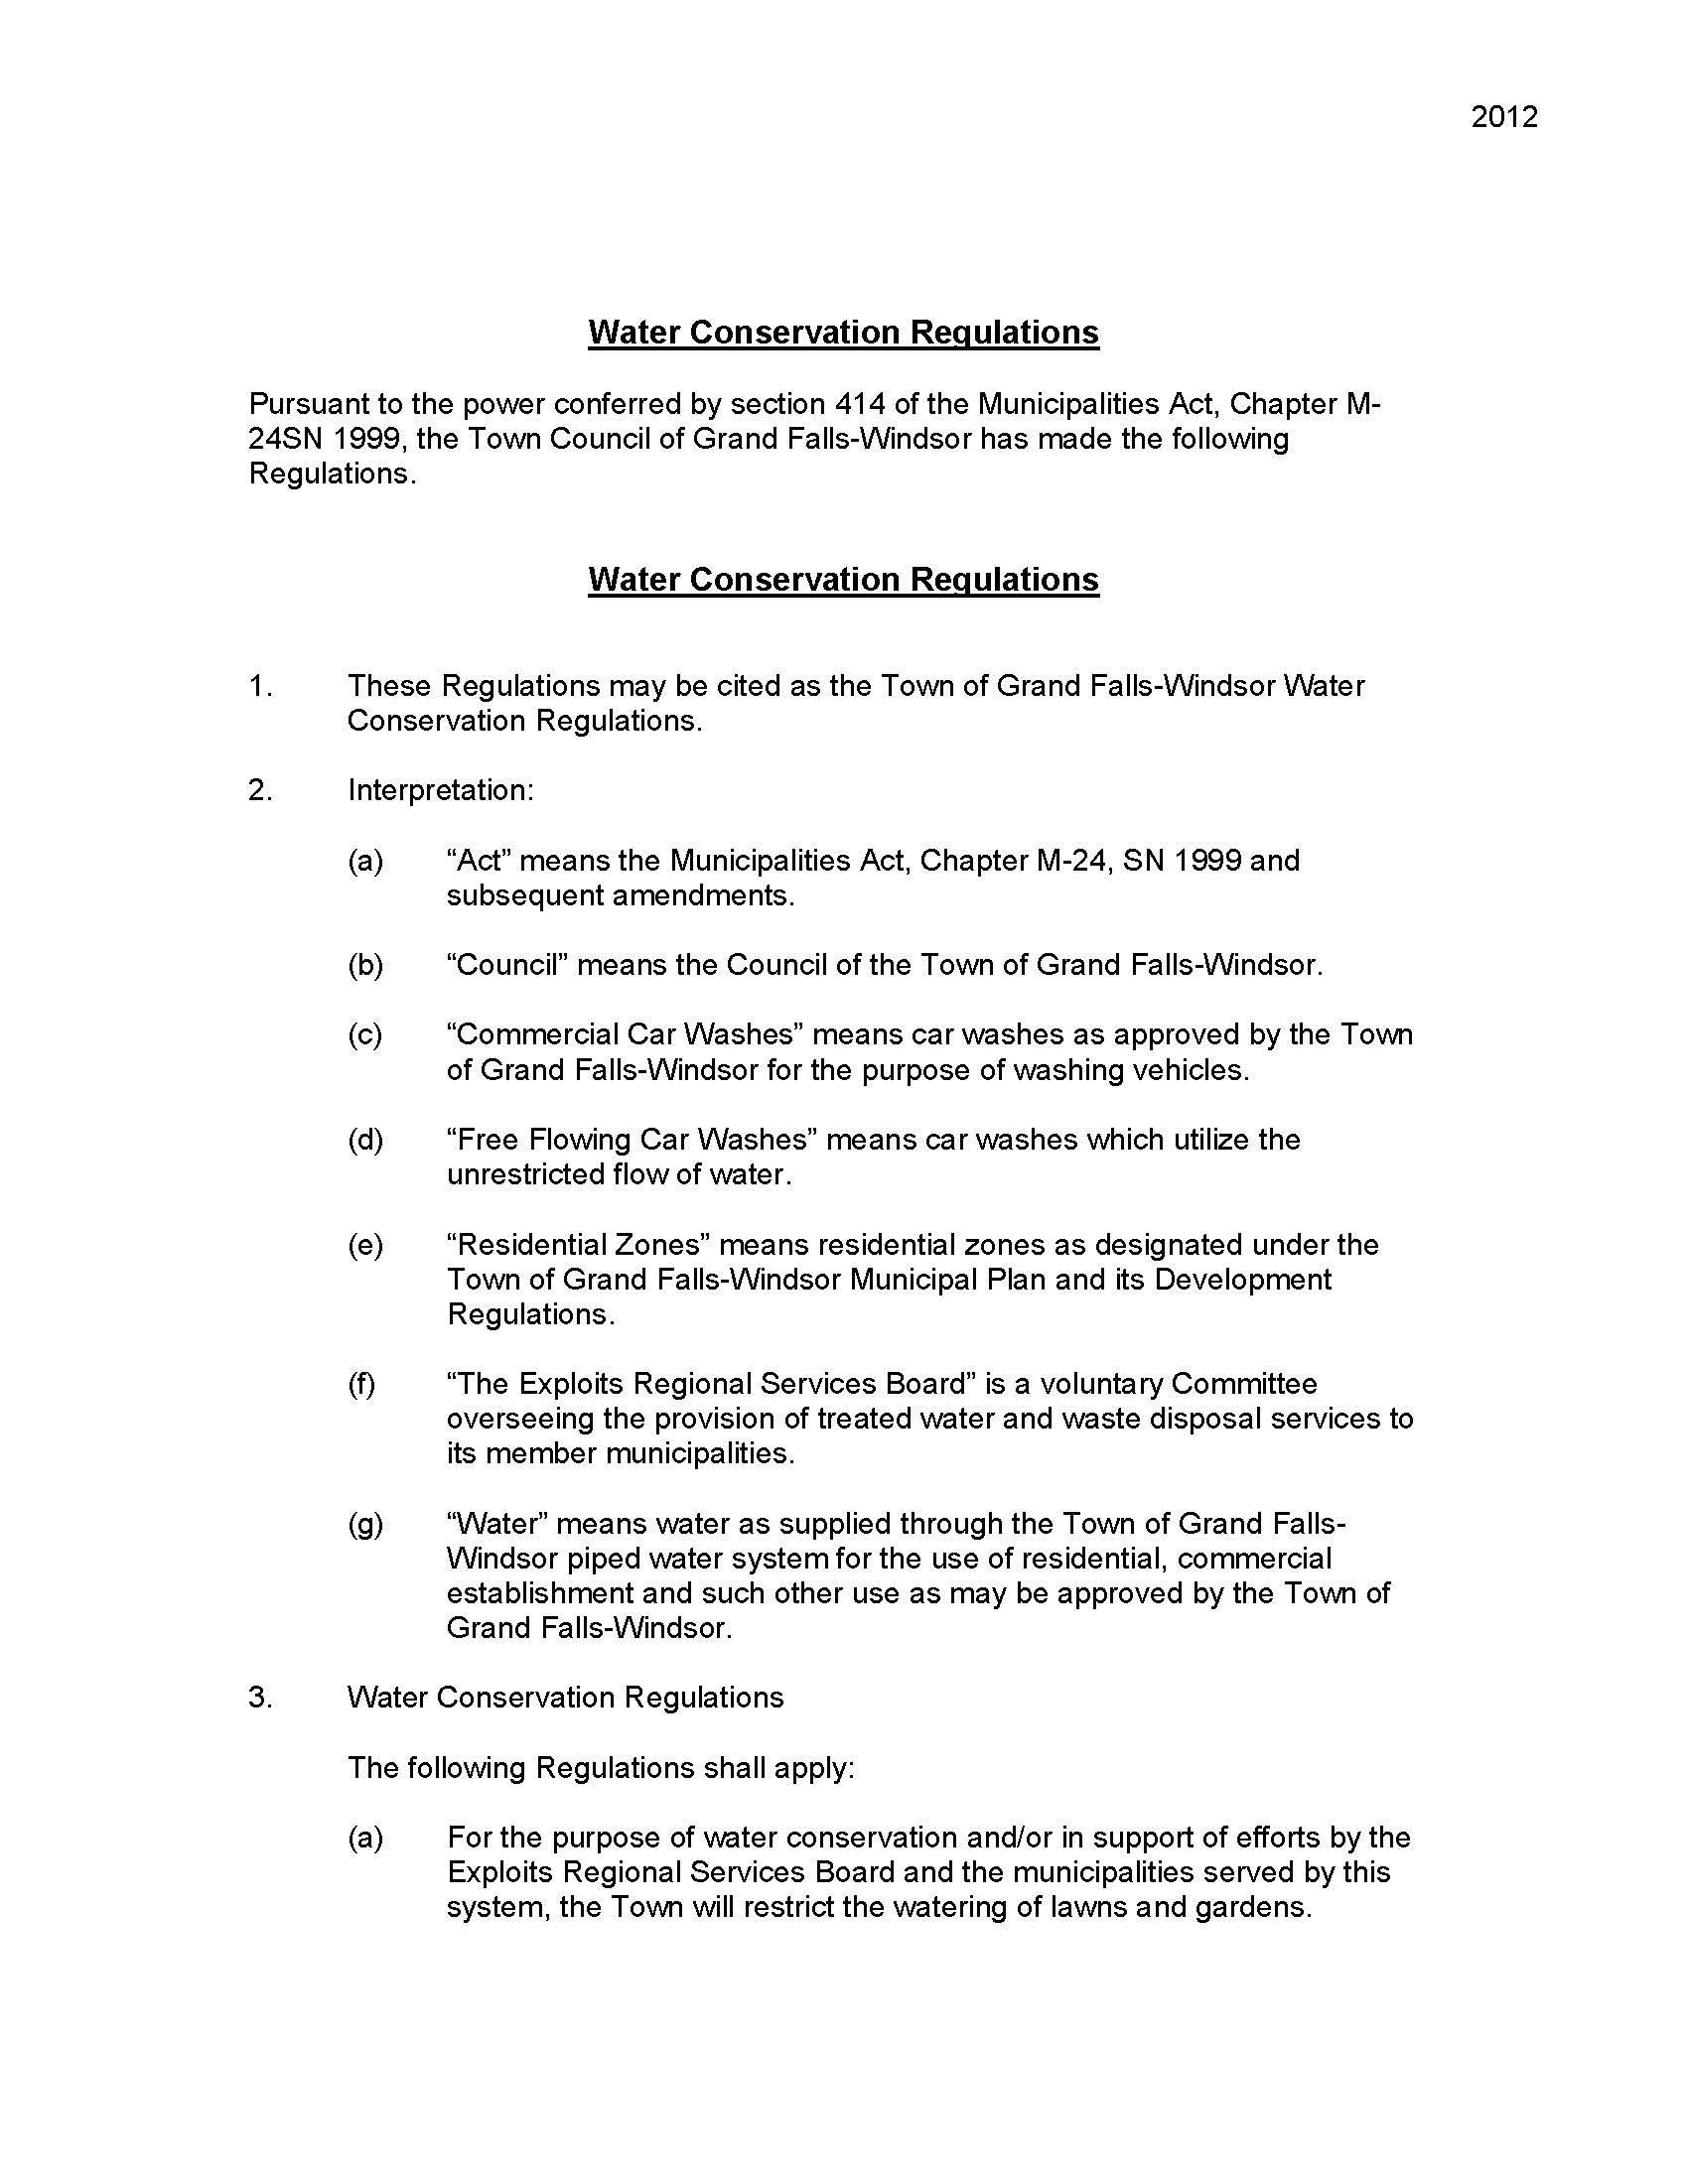 Water Conservation Regulations 1 Page 1